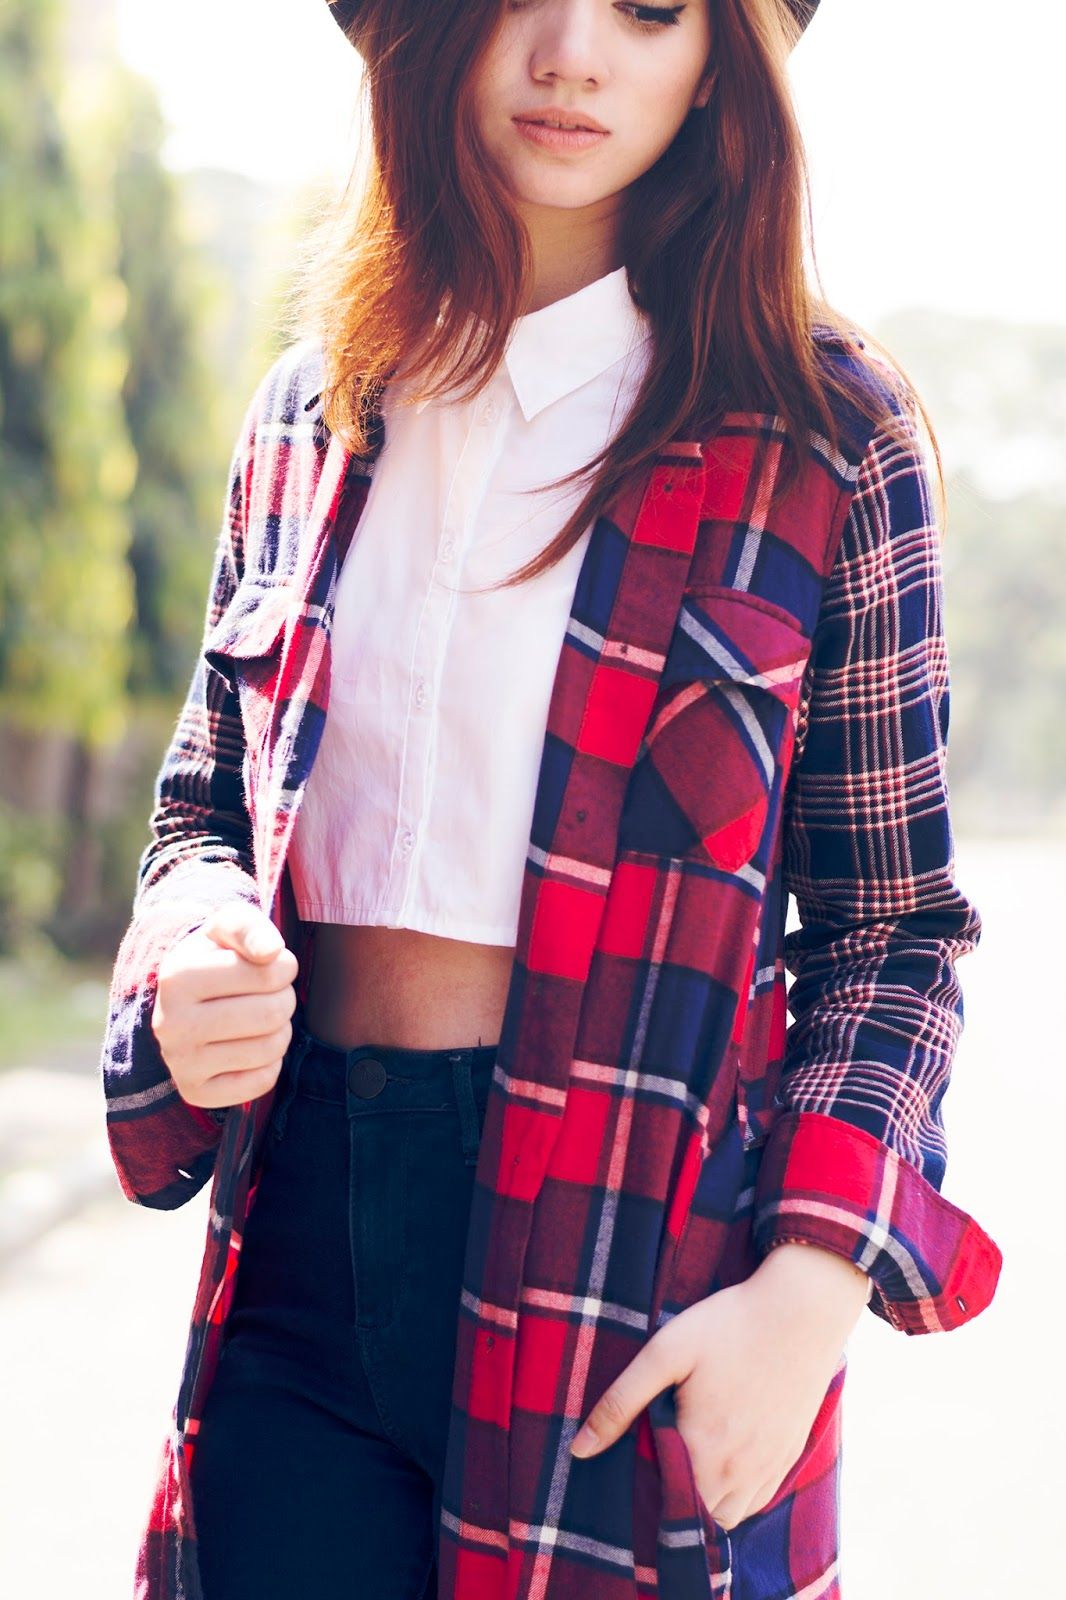 Brewing Happiness: UNIQLO FLANNEL x AILEEN CLARISSE: FOR THE RED, WHITE, AND BLUE